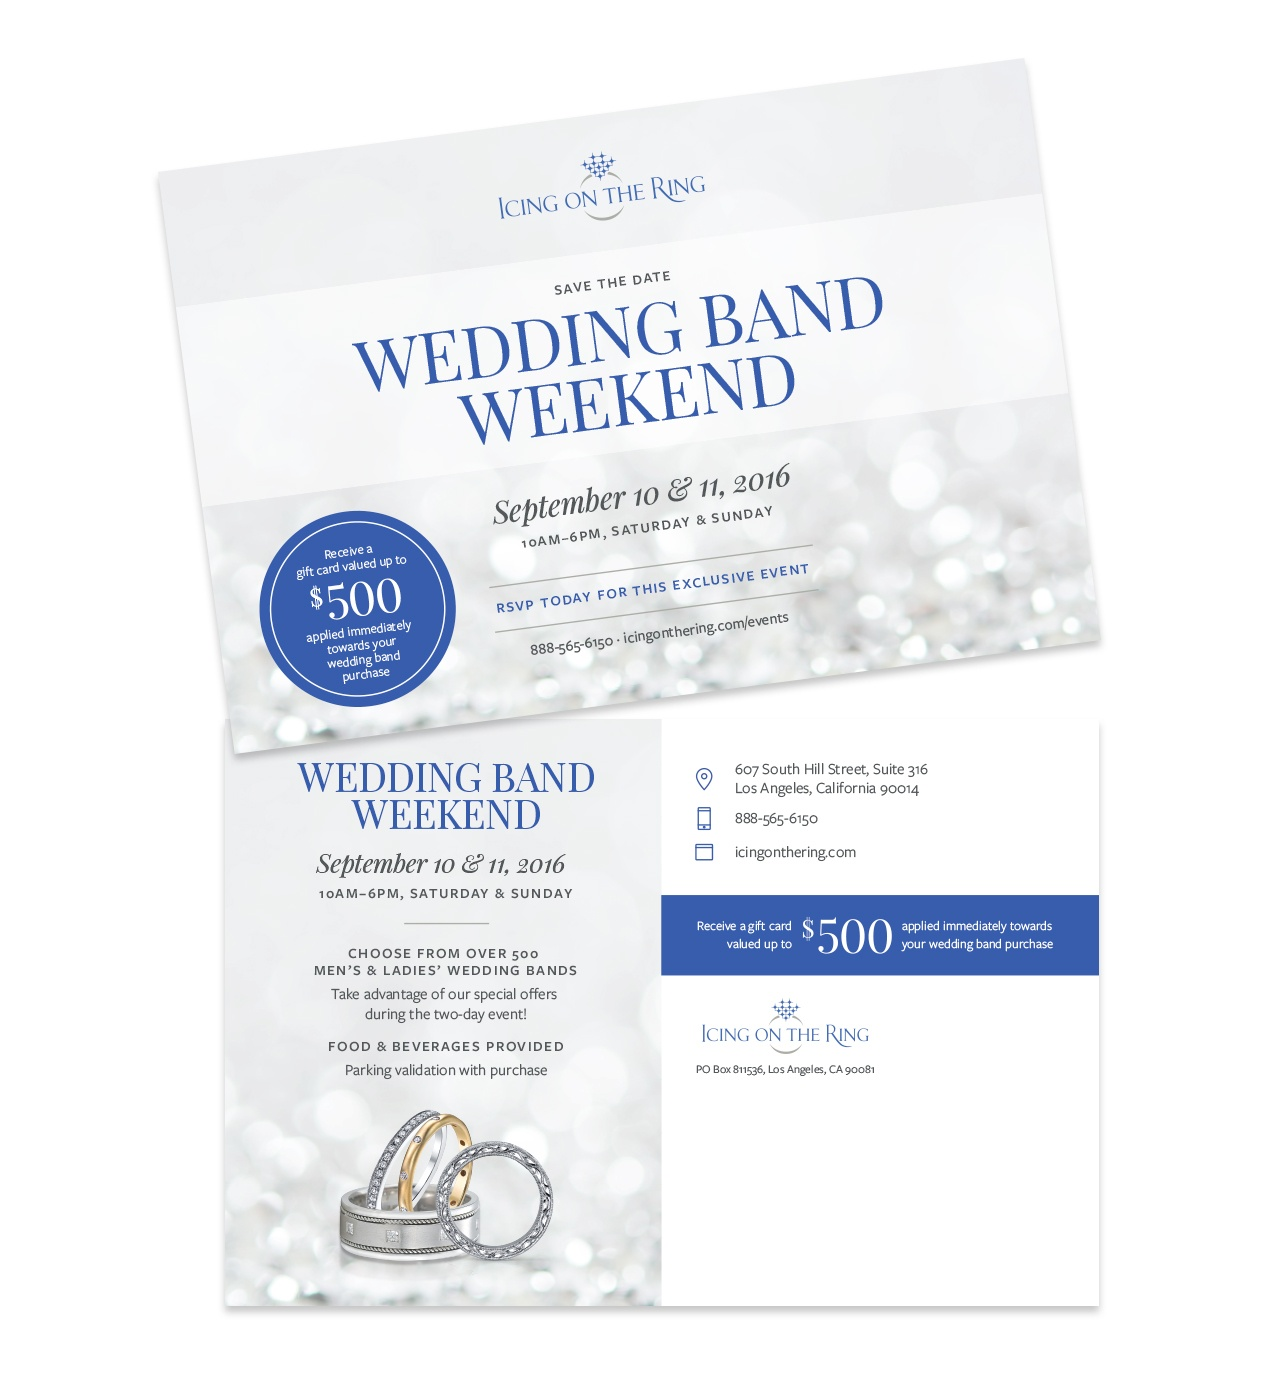 Icing On The Ring Direct Mail Marketing Design by Salted Stone